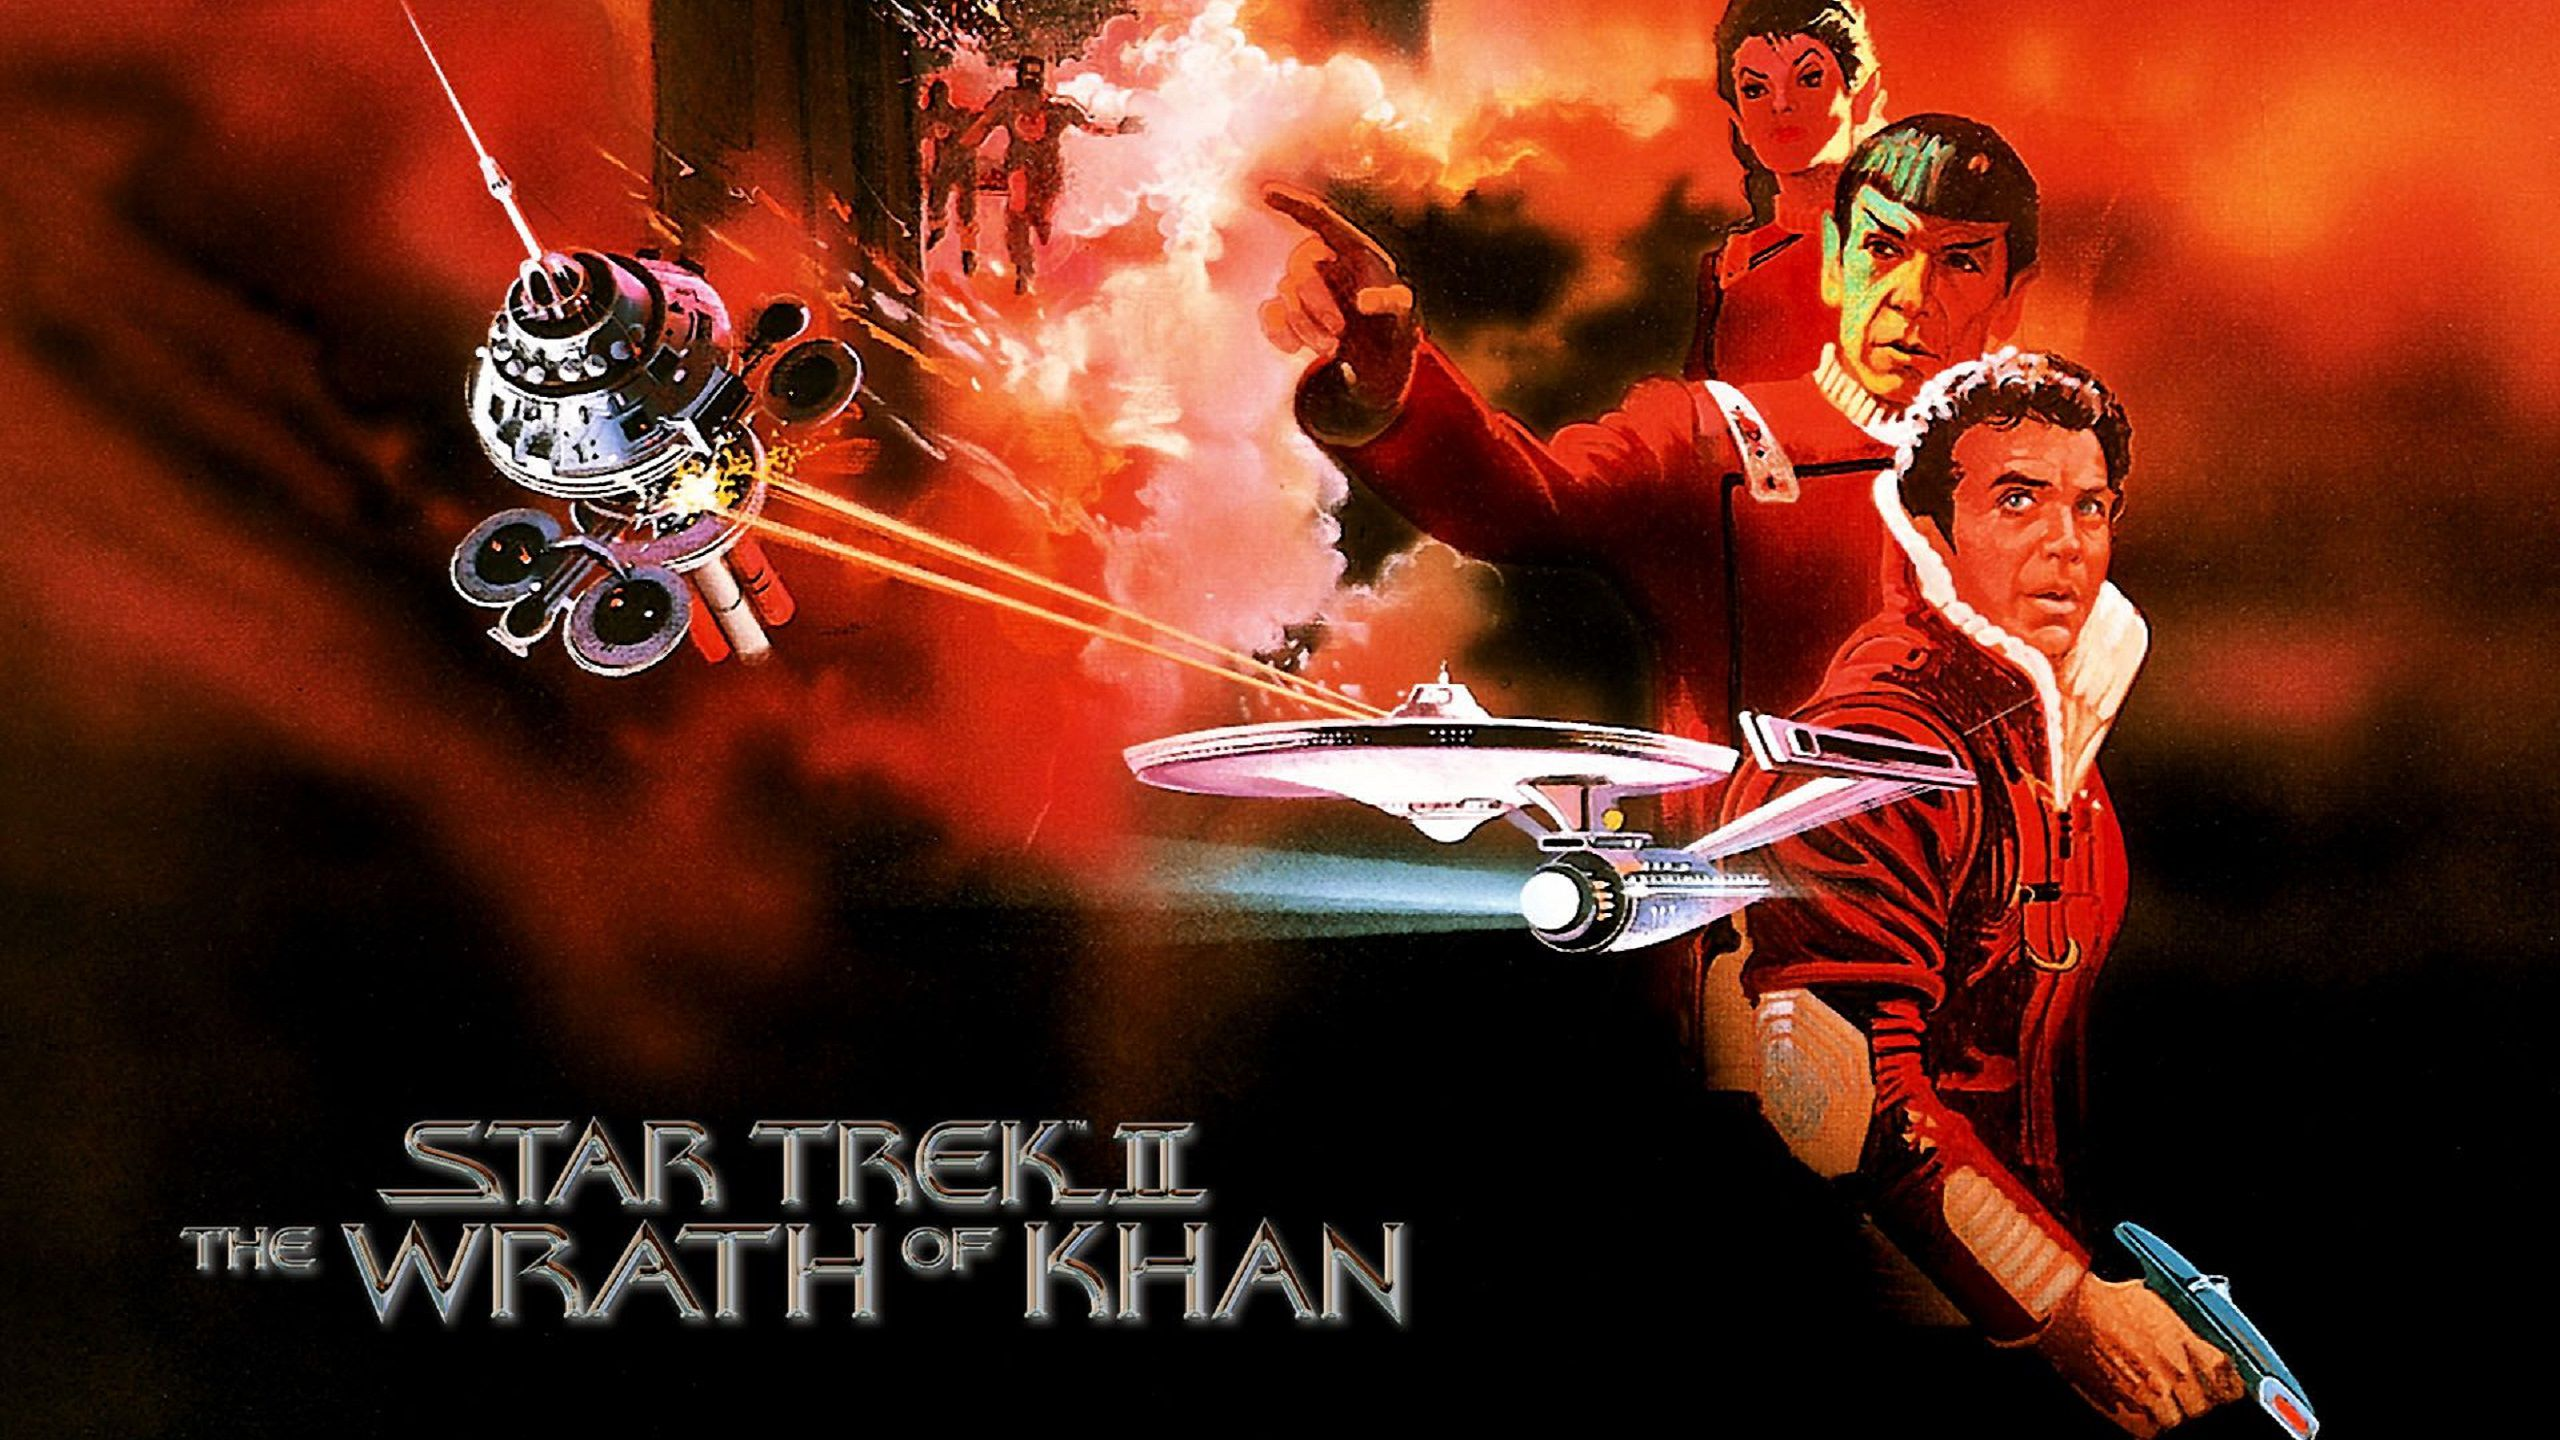 Star Trek 2 - Ira di Khan - Wrath of Khan banner